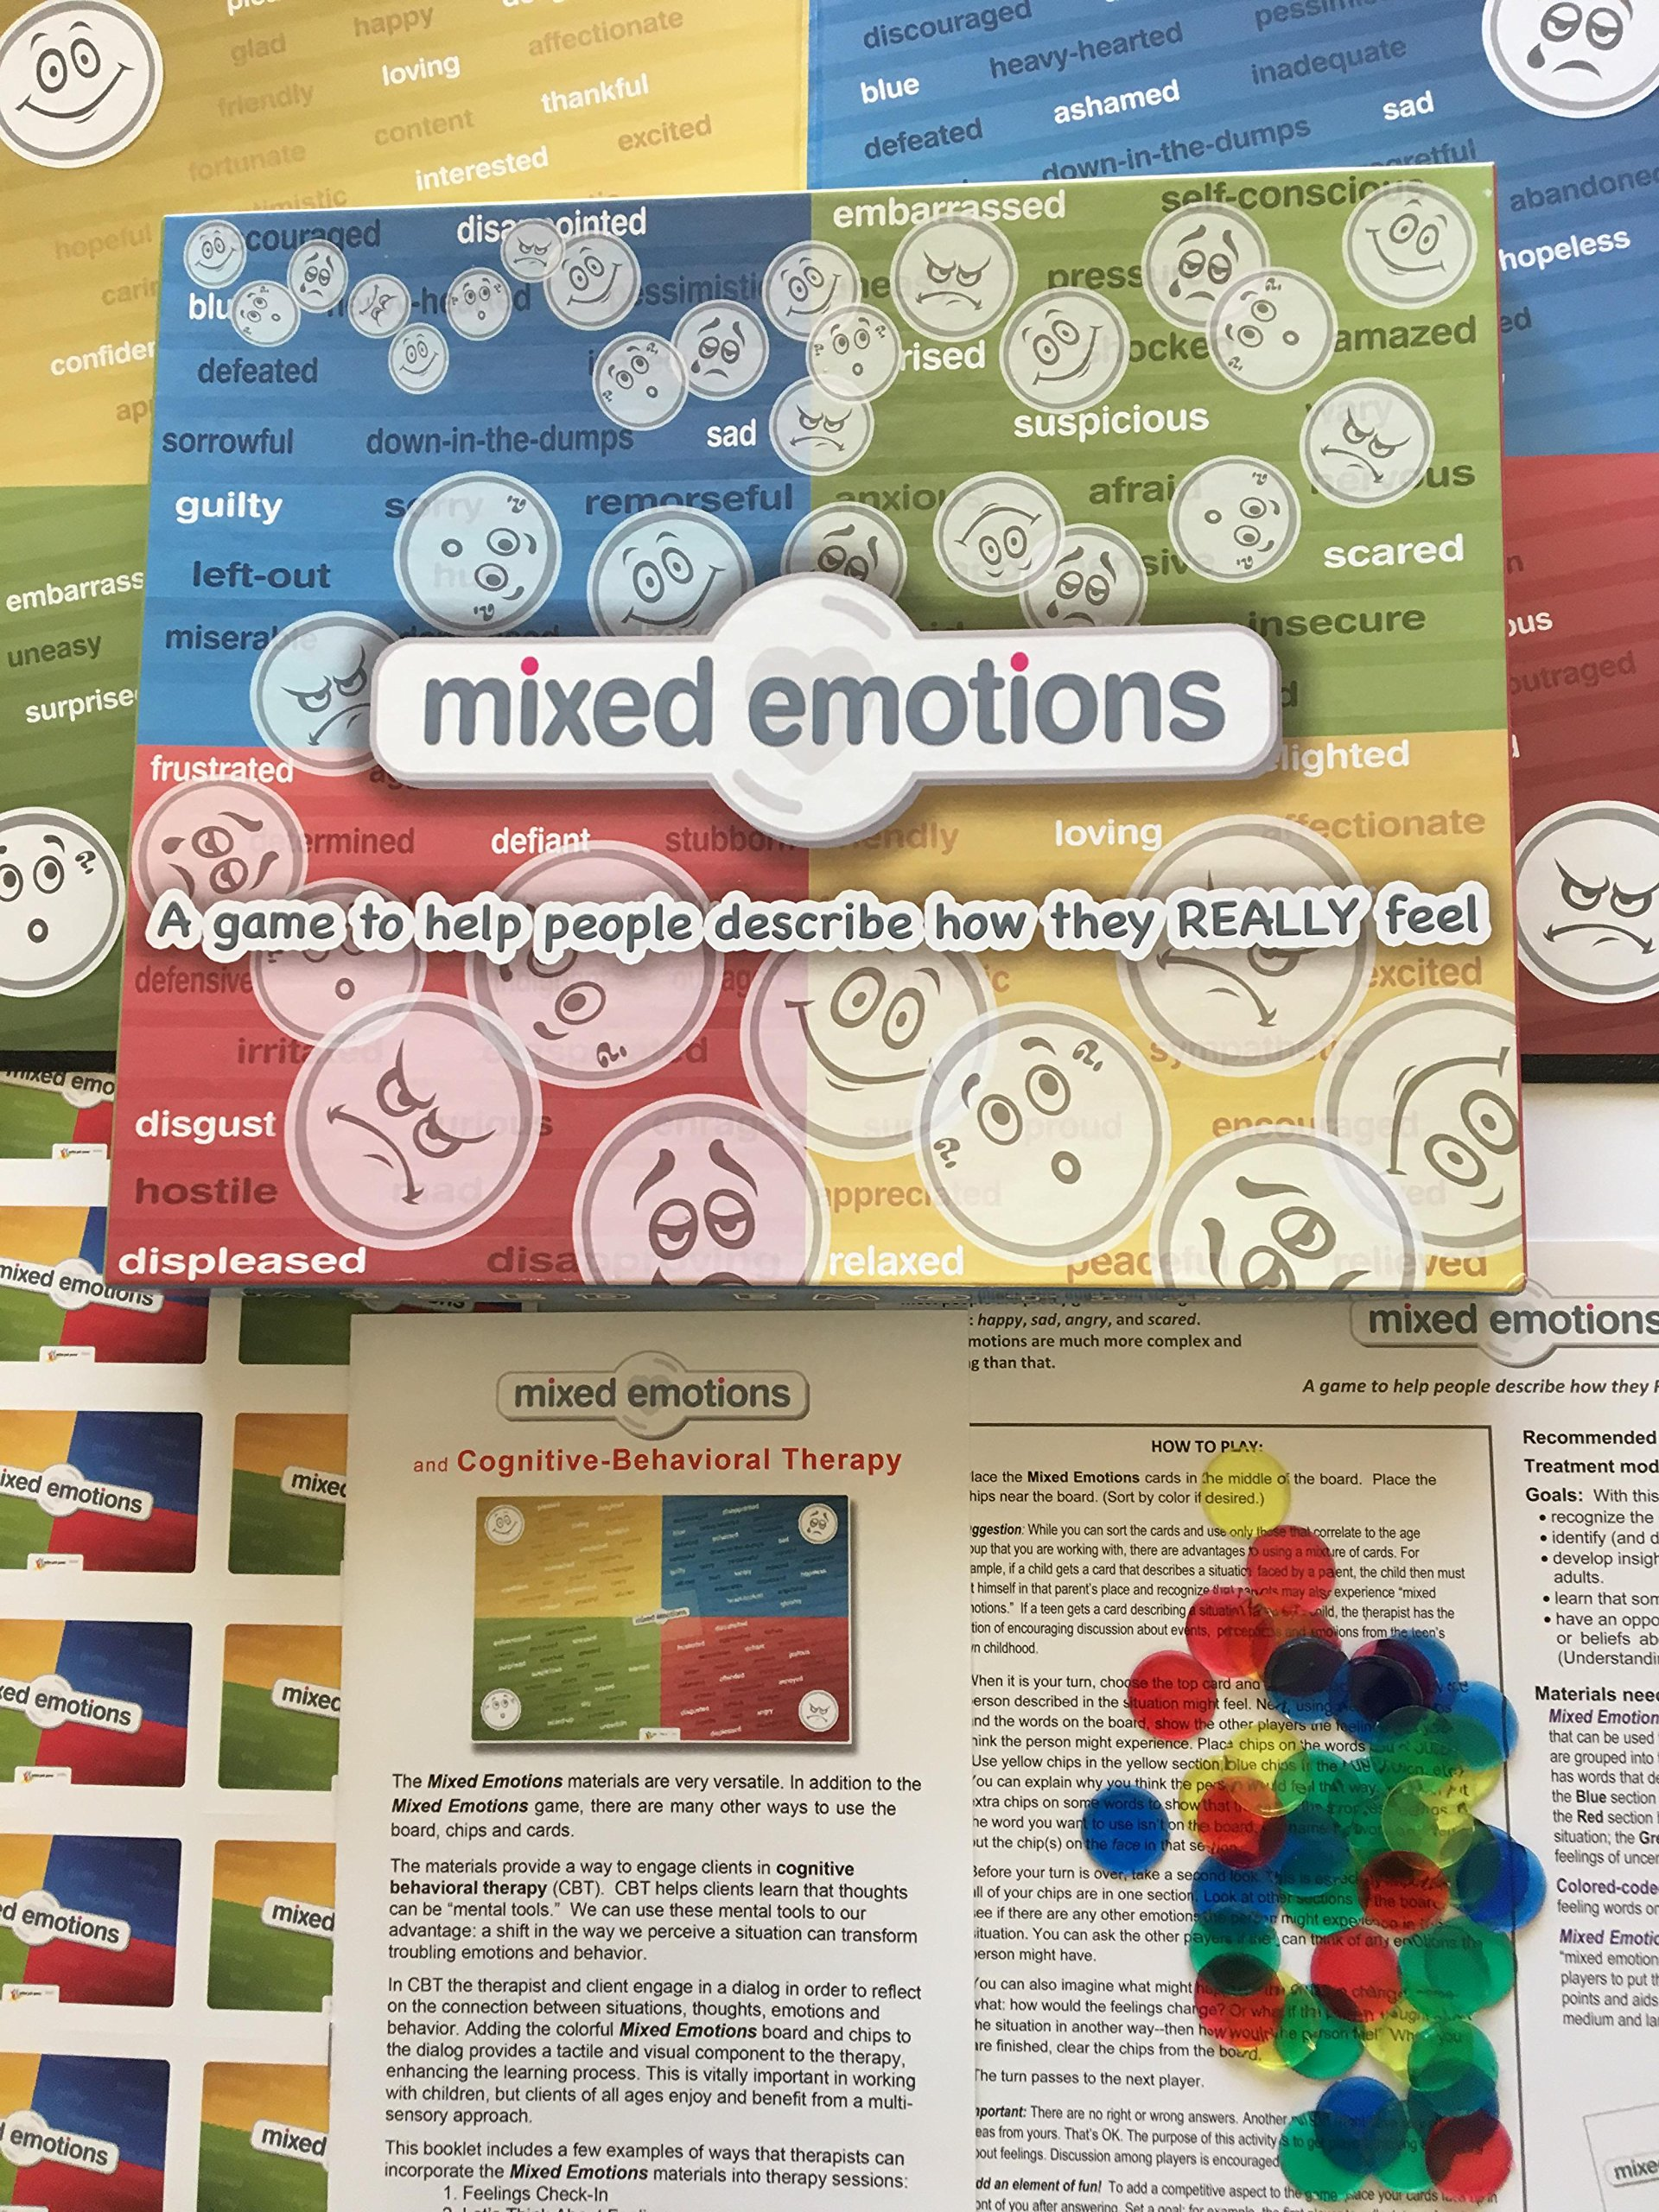 Mixed Emotions: An Activity for Cognitive-Behavioral Therapy